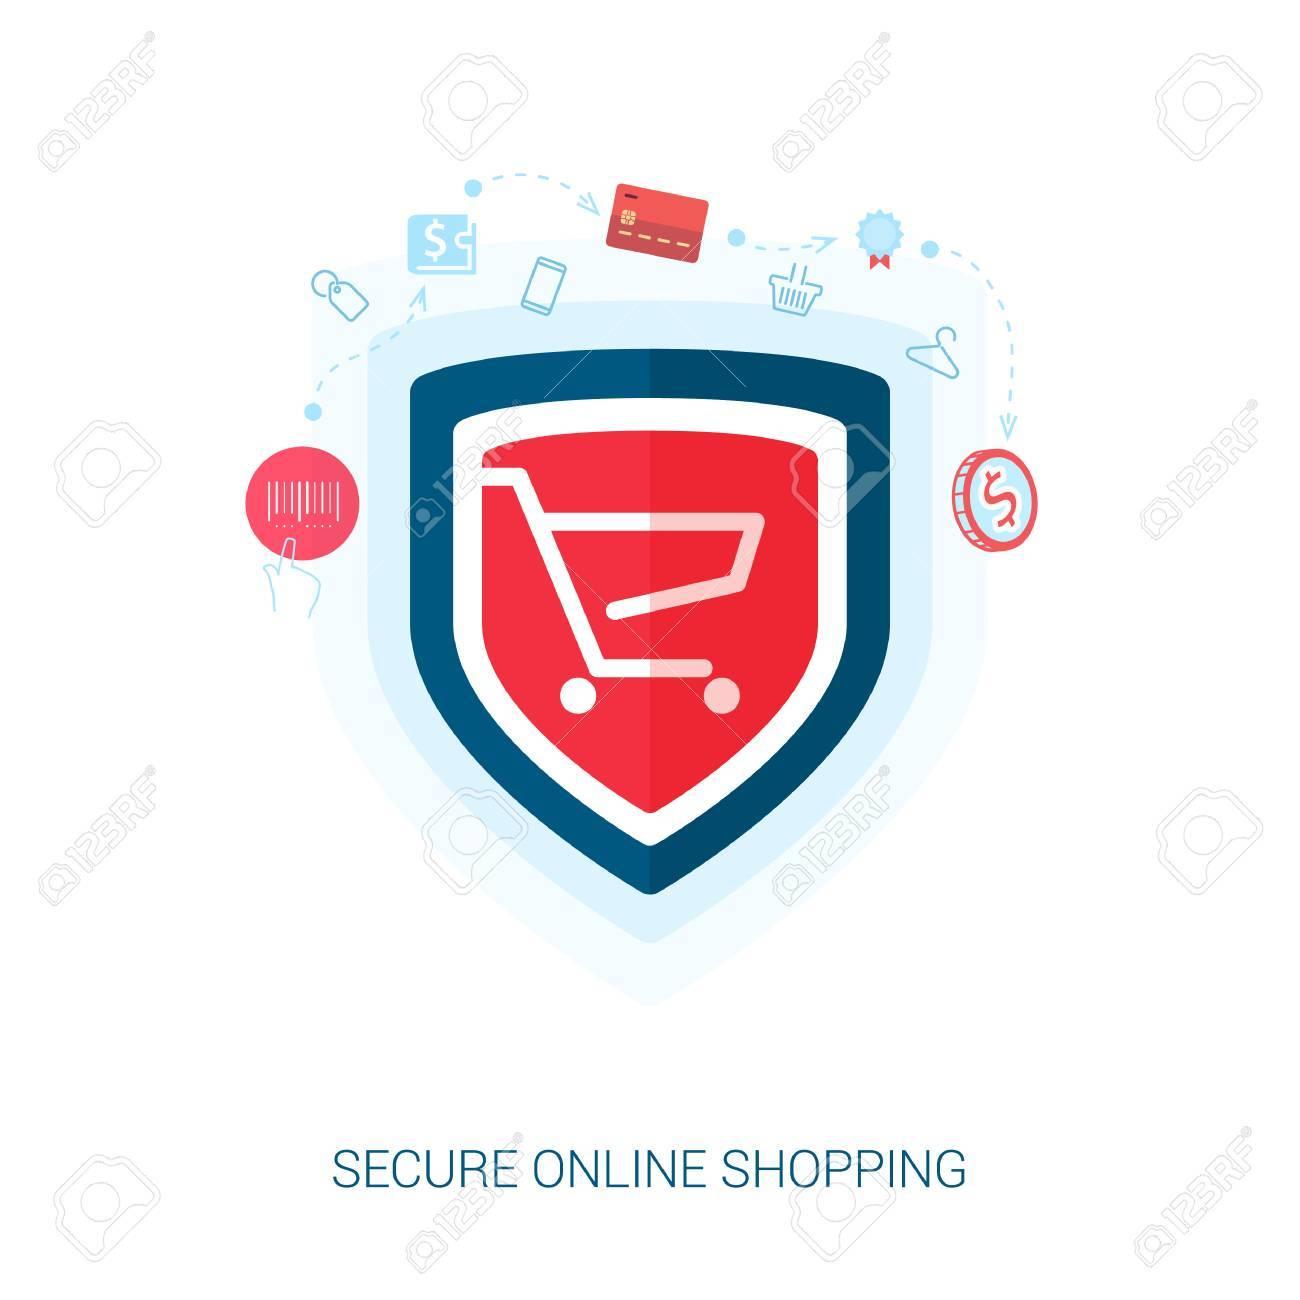 Set of flat design concept icons for secure online shopping